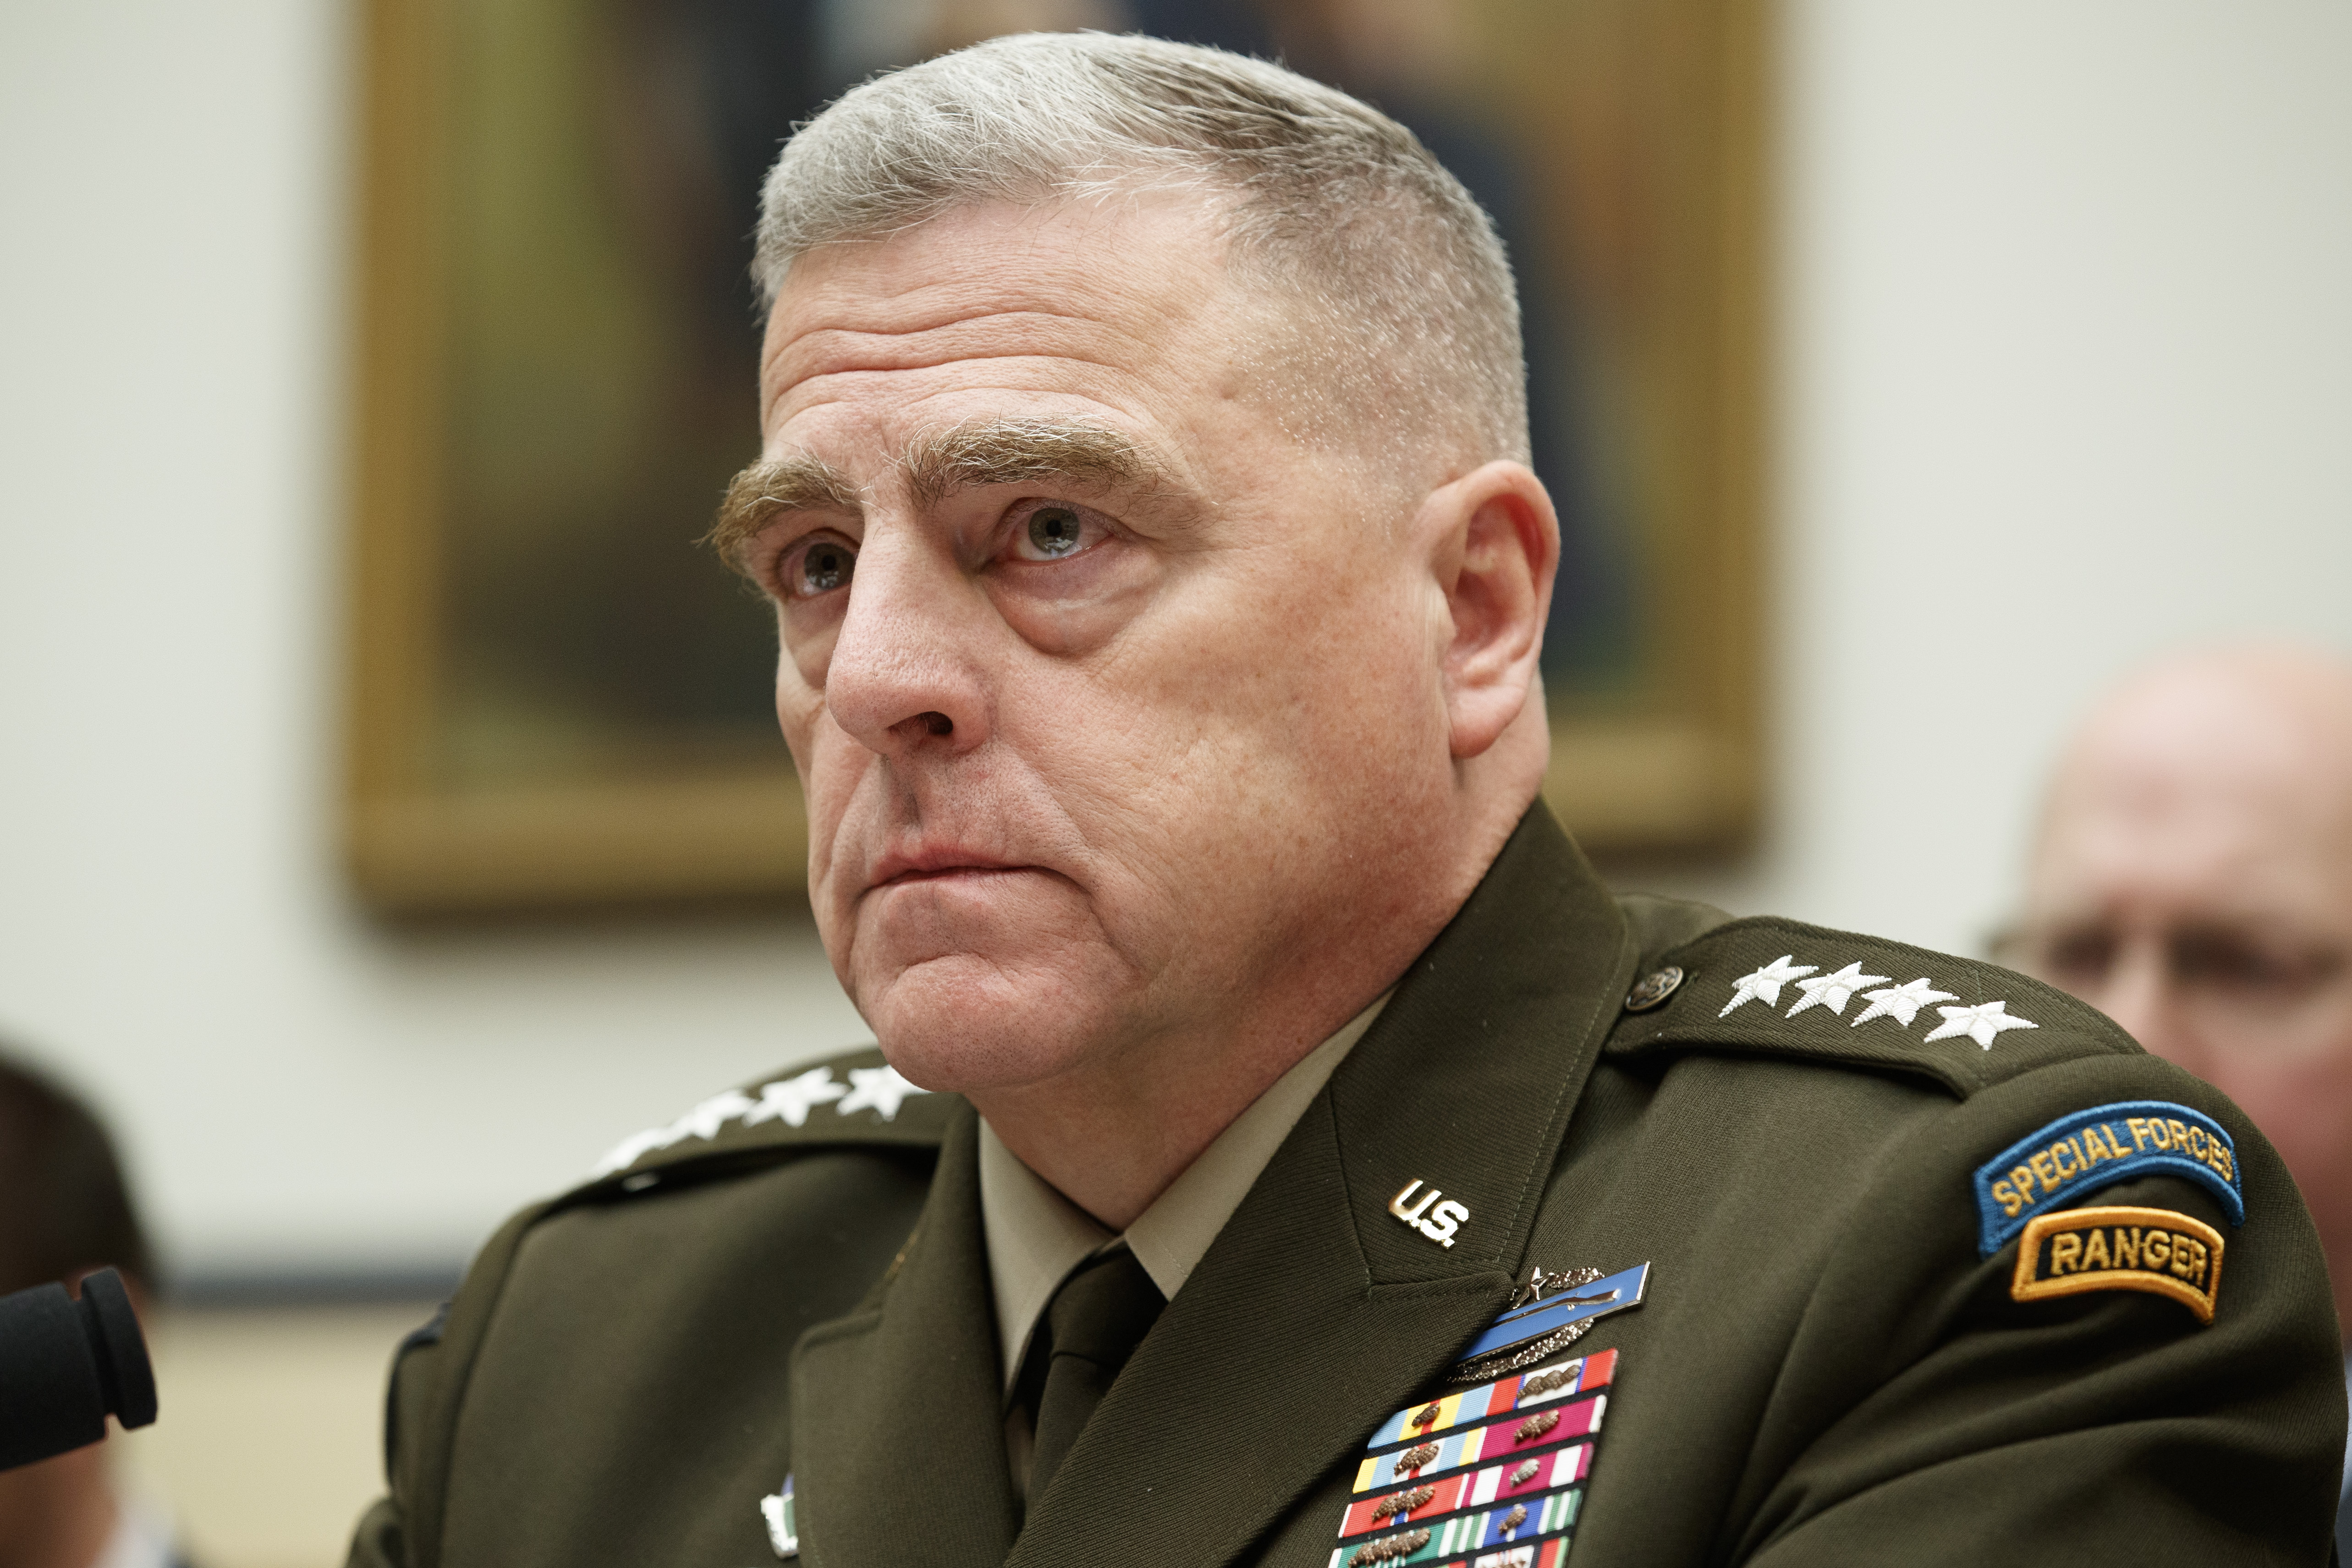 Top U.S. general says Trump's pardons won't hurt military: 'We will not turn into a gang'